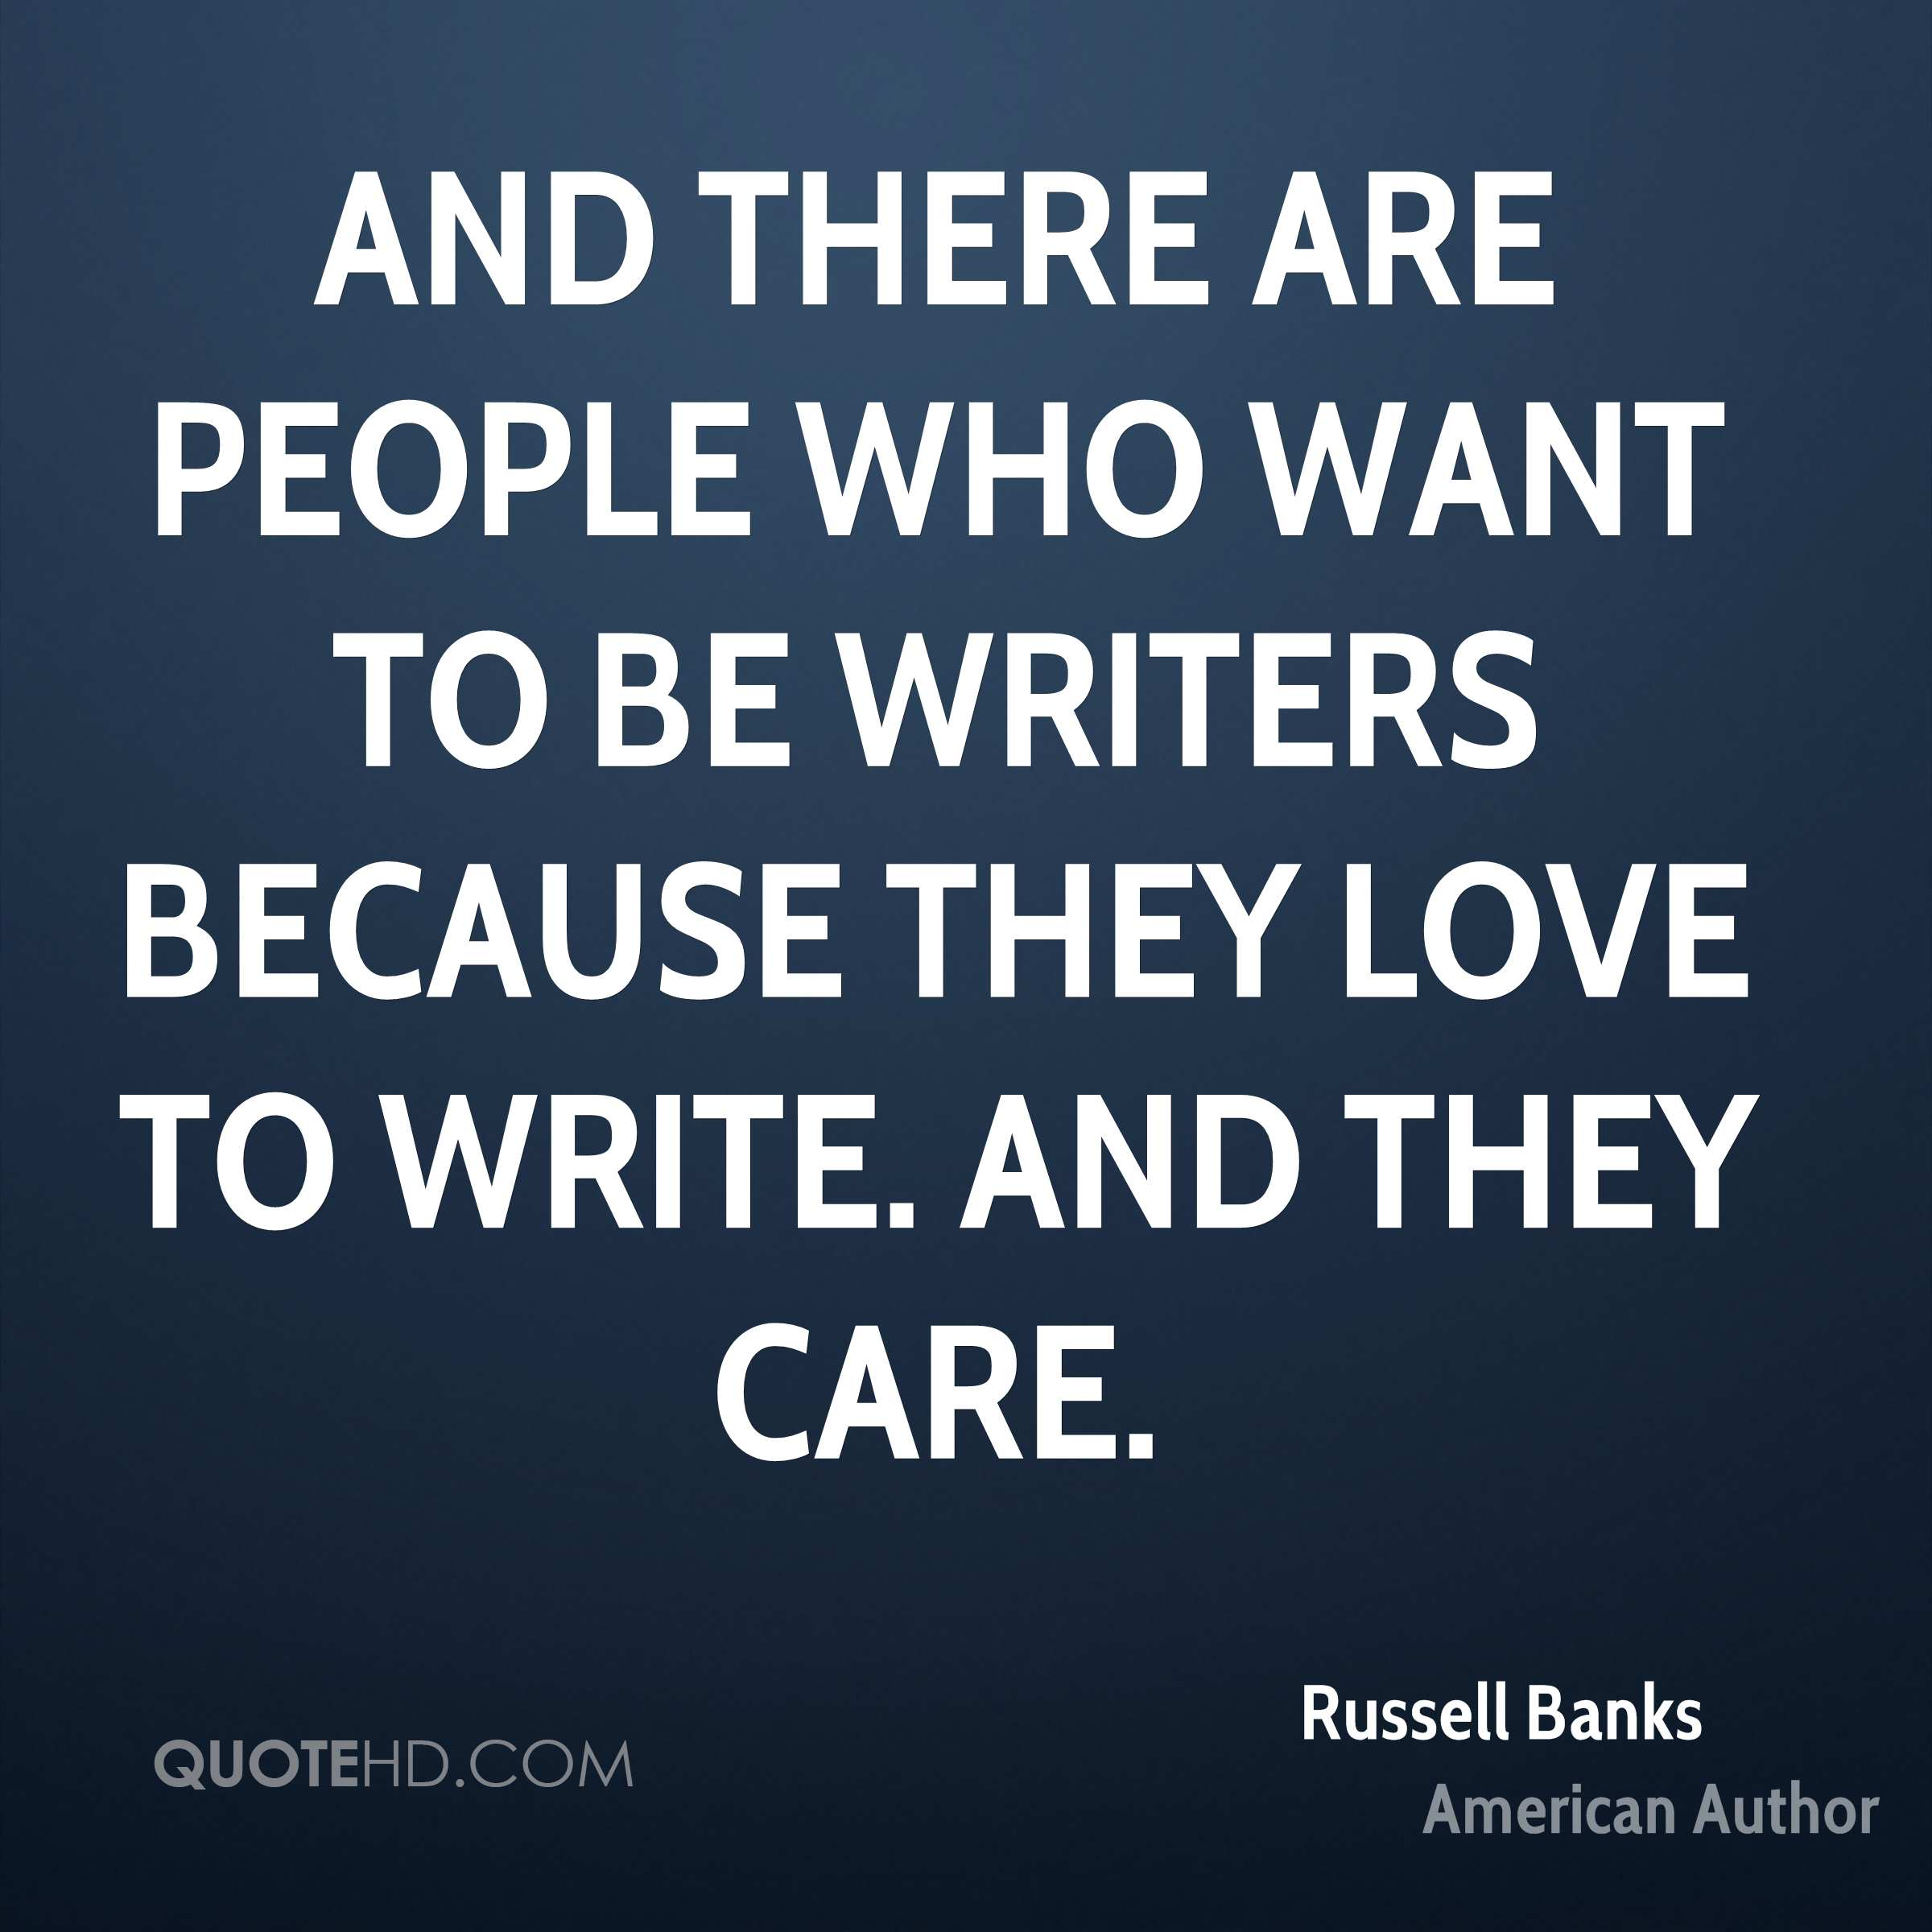 And there are people who want to be writers because they love to write. And they care.